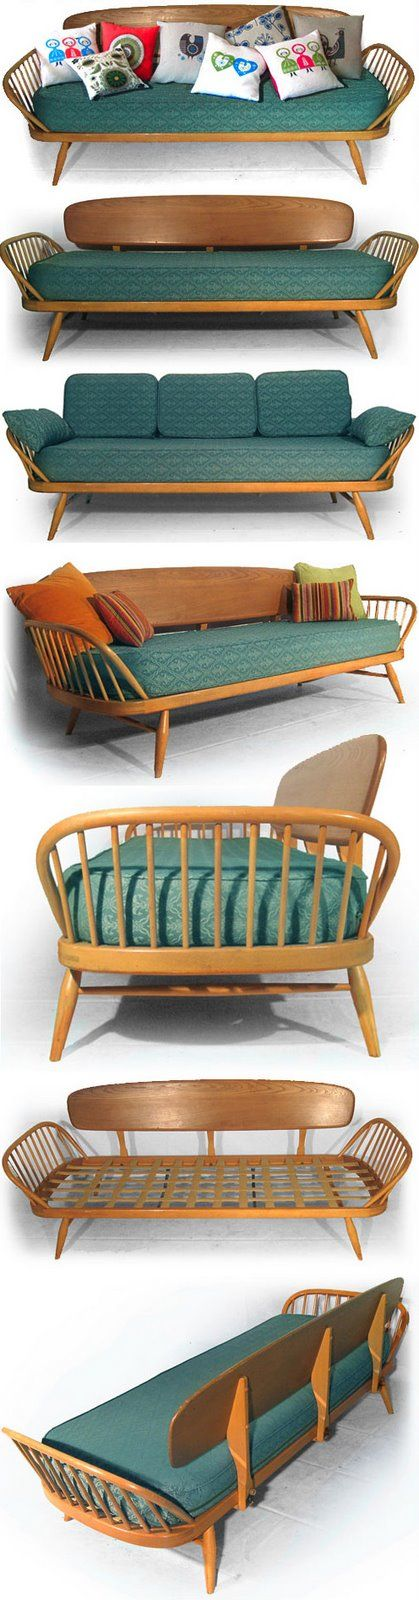 Ercol Daybed                                                                                                                                                                                 More